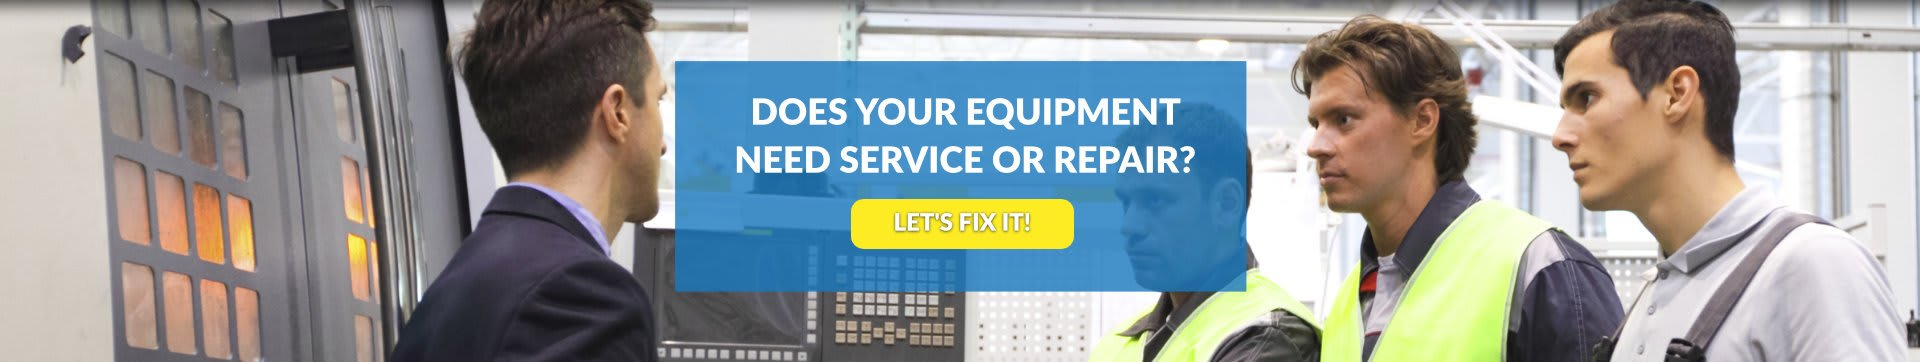 does your equipment need service or repair